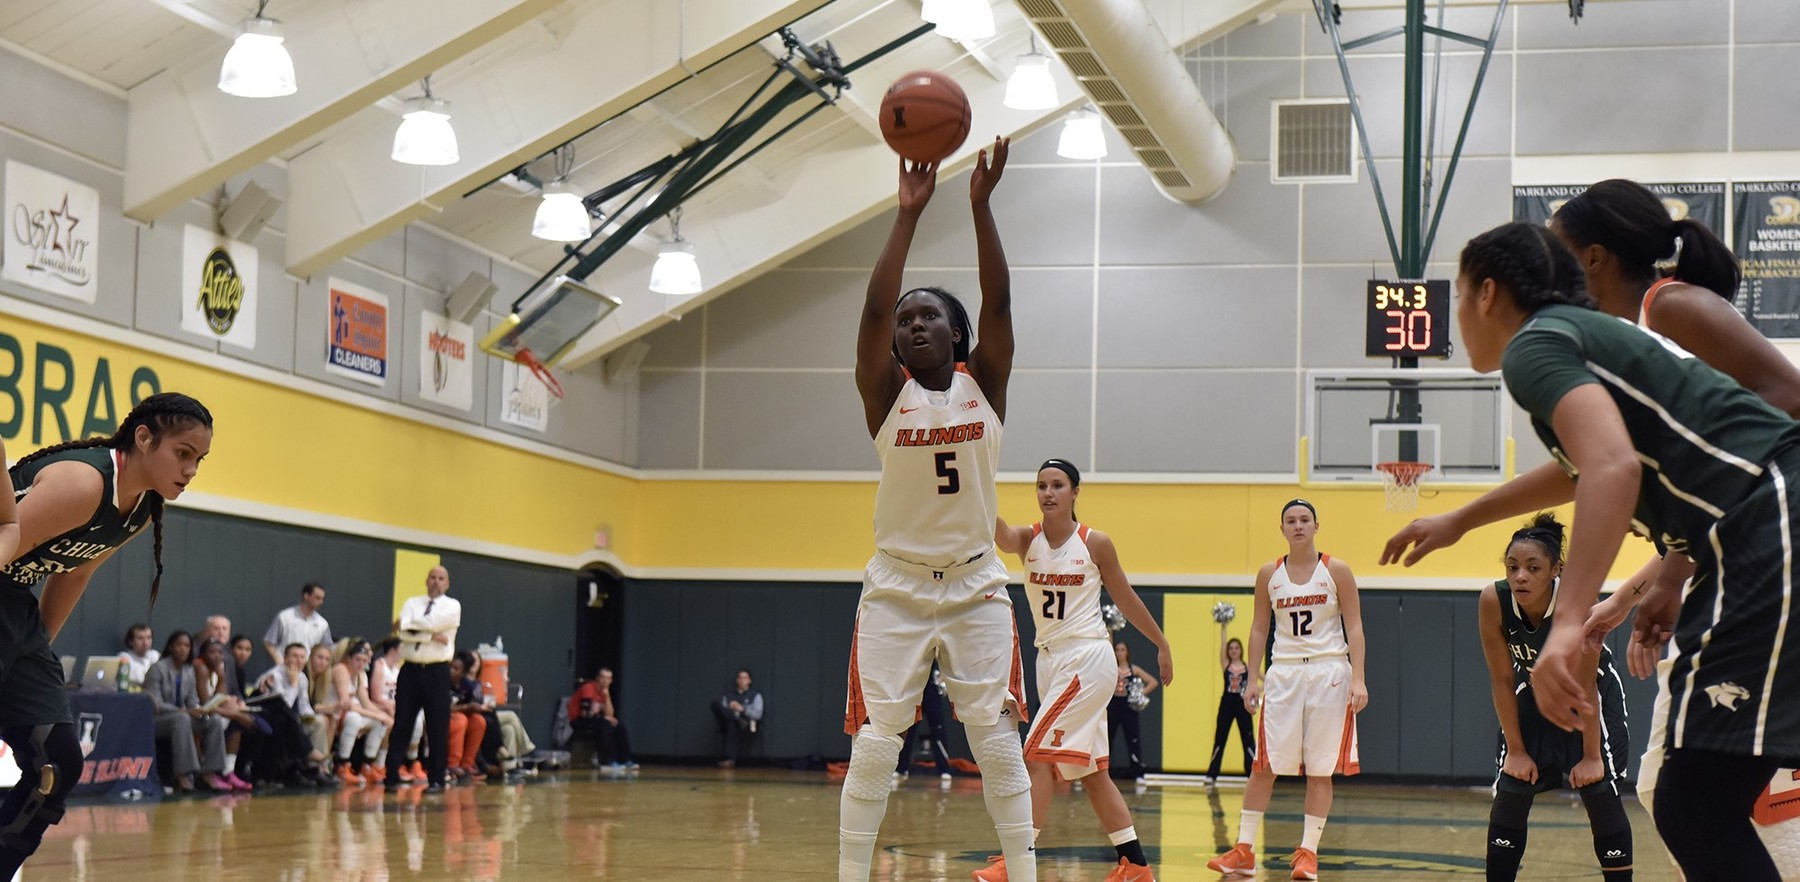 Image of women's basketball player Cierra Rice shooting a free-throw